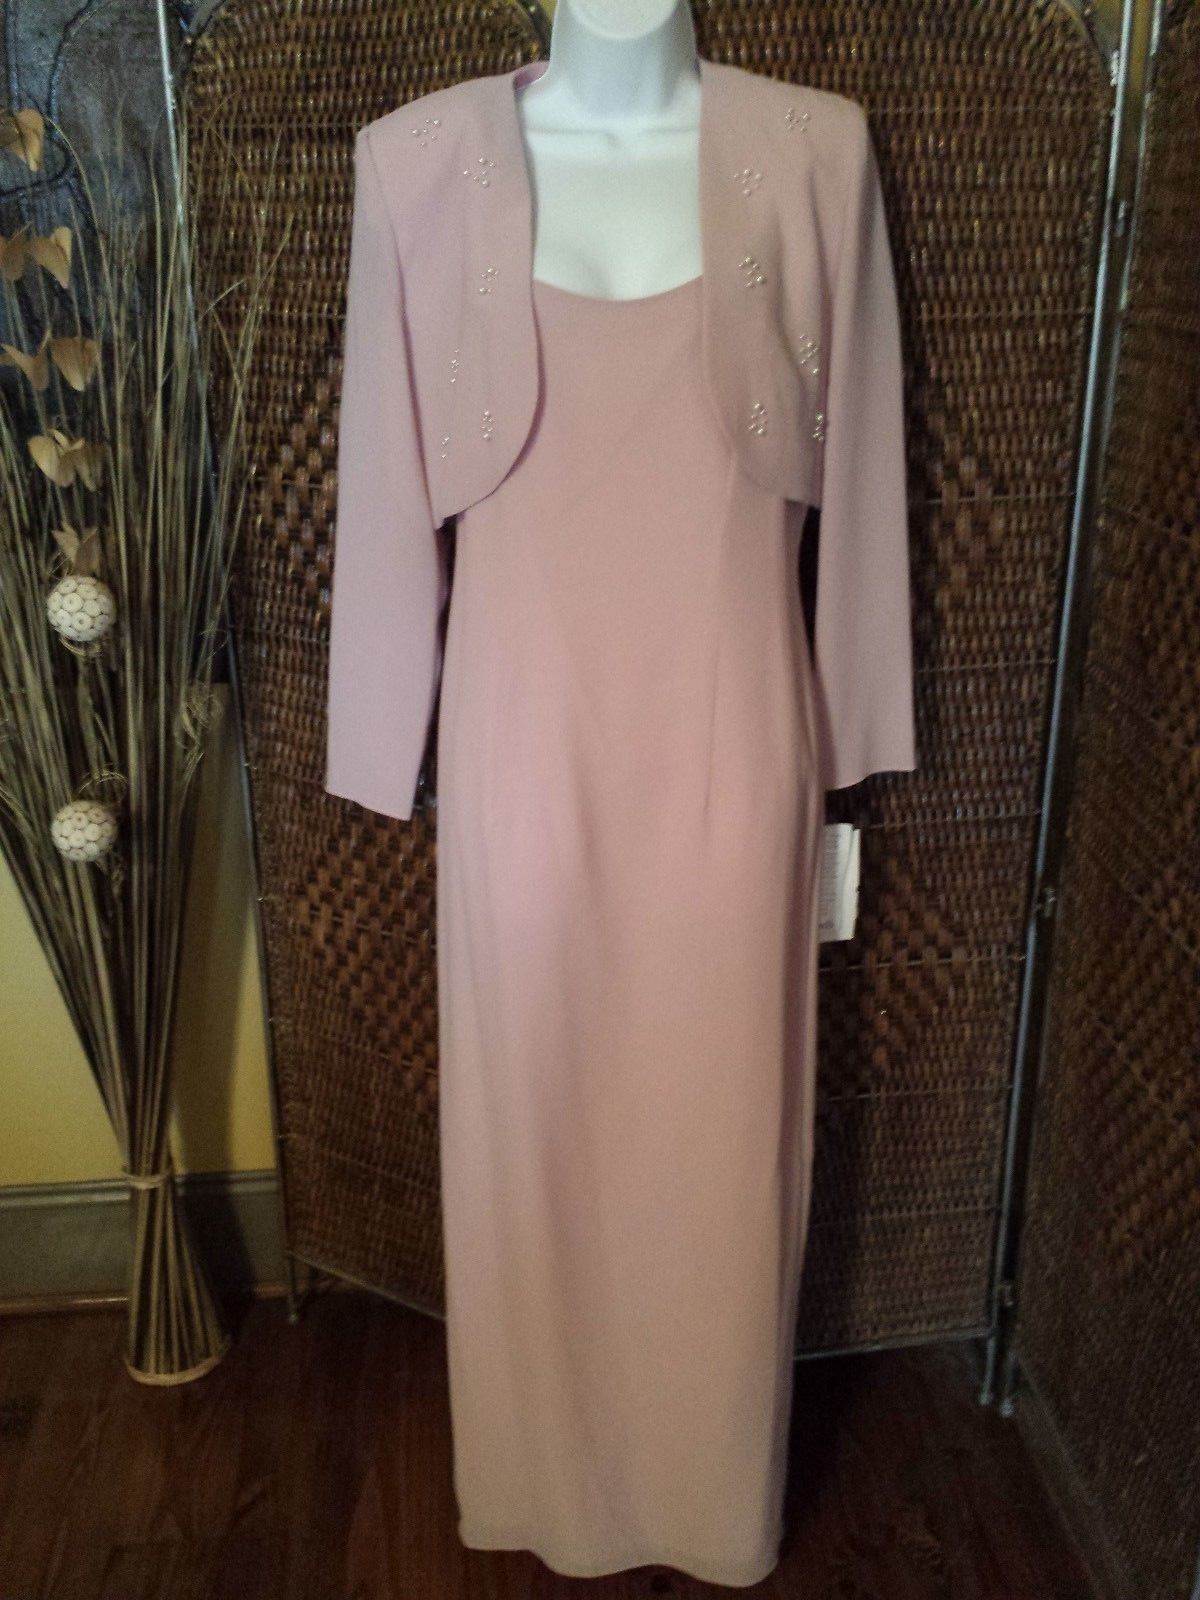 Nwt after dark formalmother of the bride pcdress size think